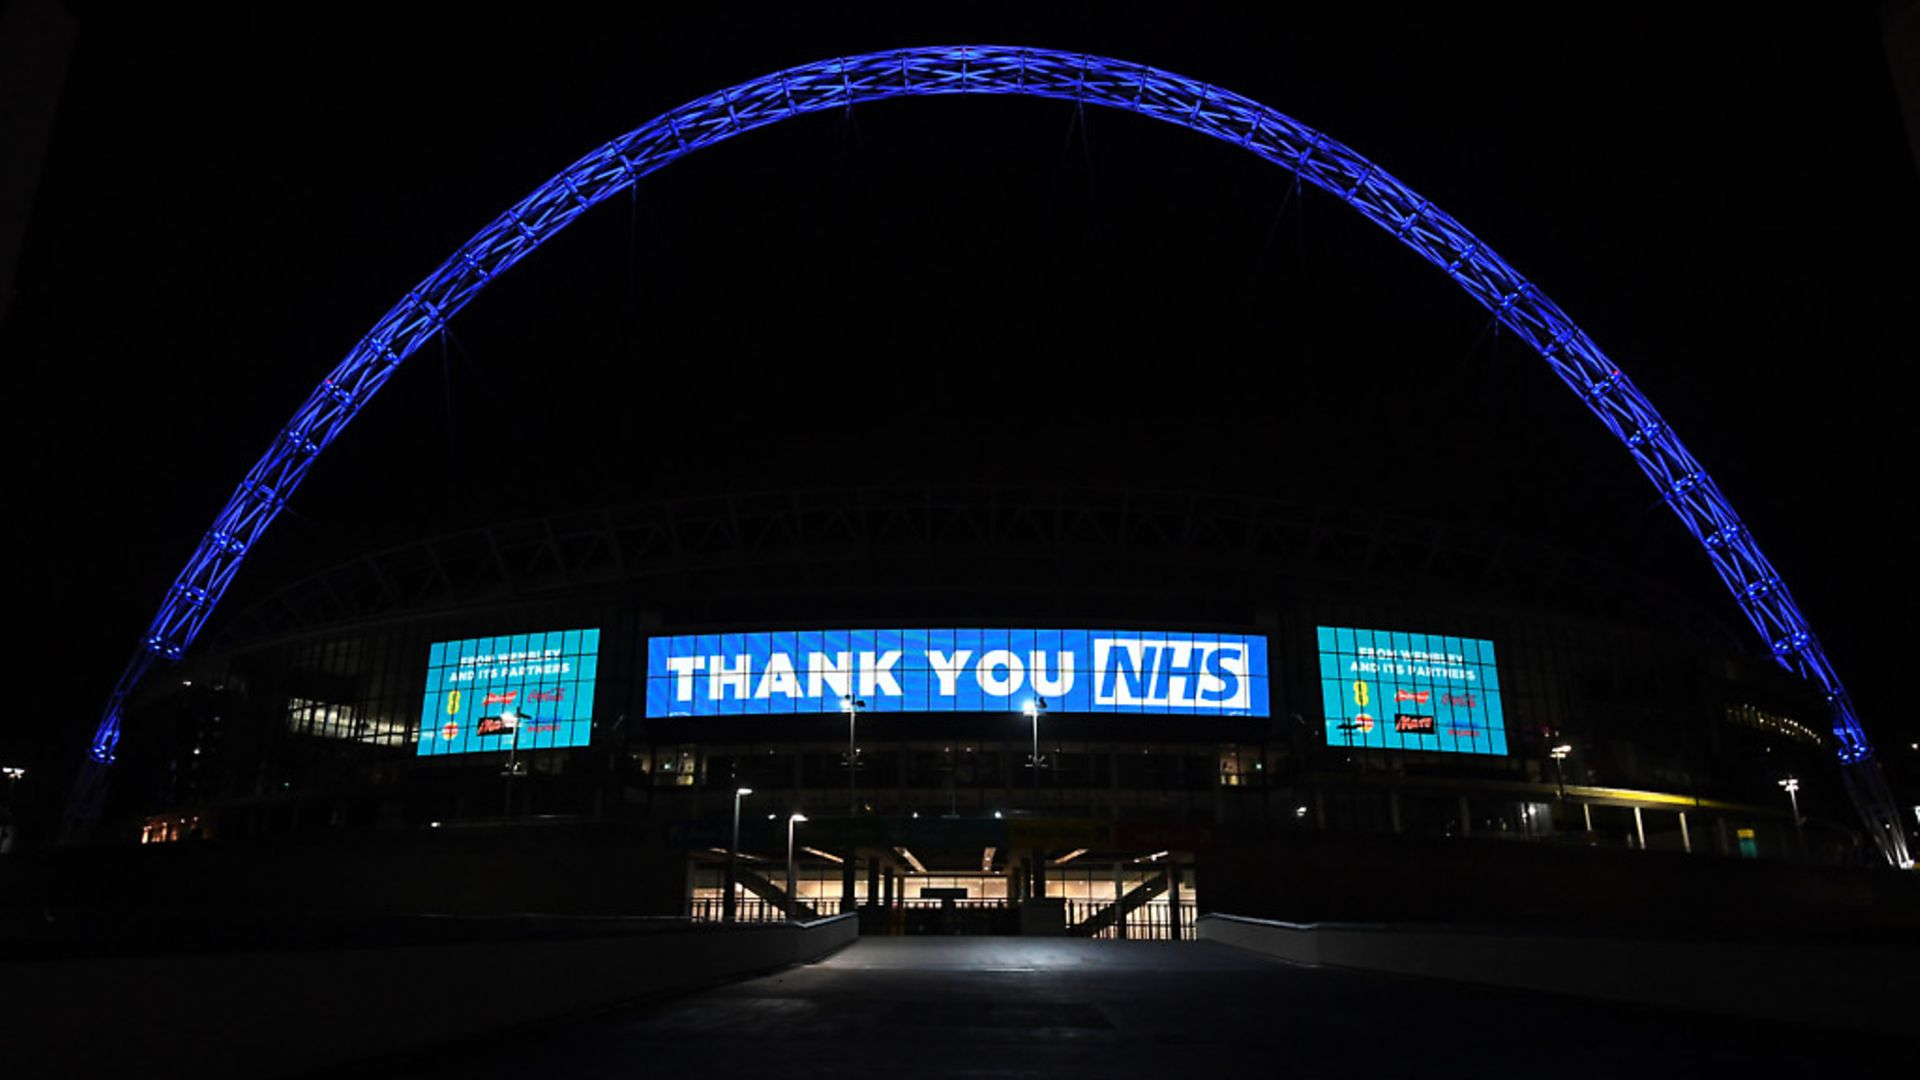 Wembley Arch is illuminated in blue to show its appreciation to the NHS amid the coronavirus outbreak in London. Photograph: Kirsty O' Connor/PA Wire. - Credit: PA